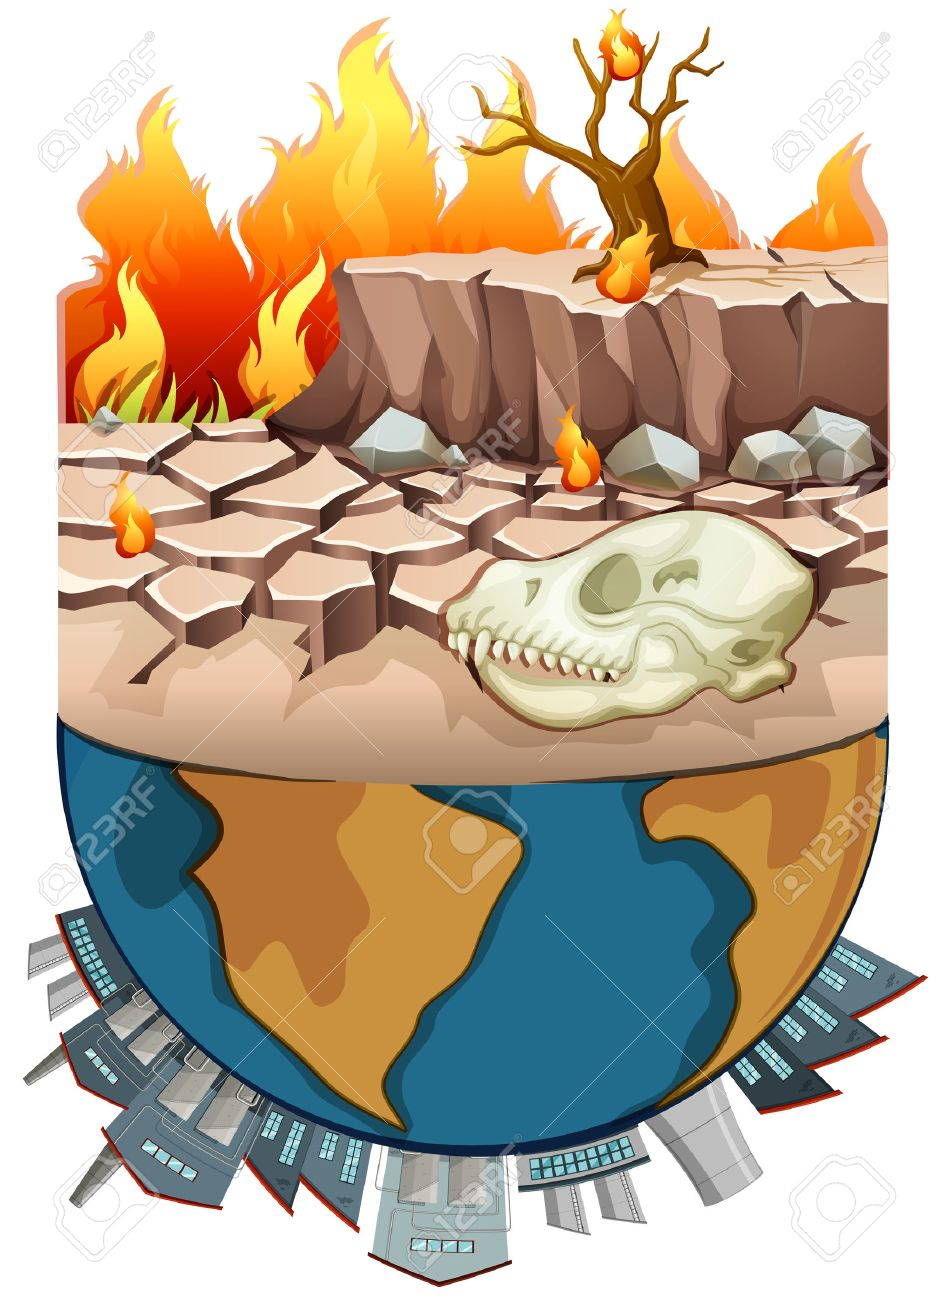 Polution on earth and drought illustration.